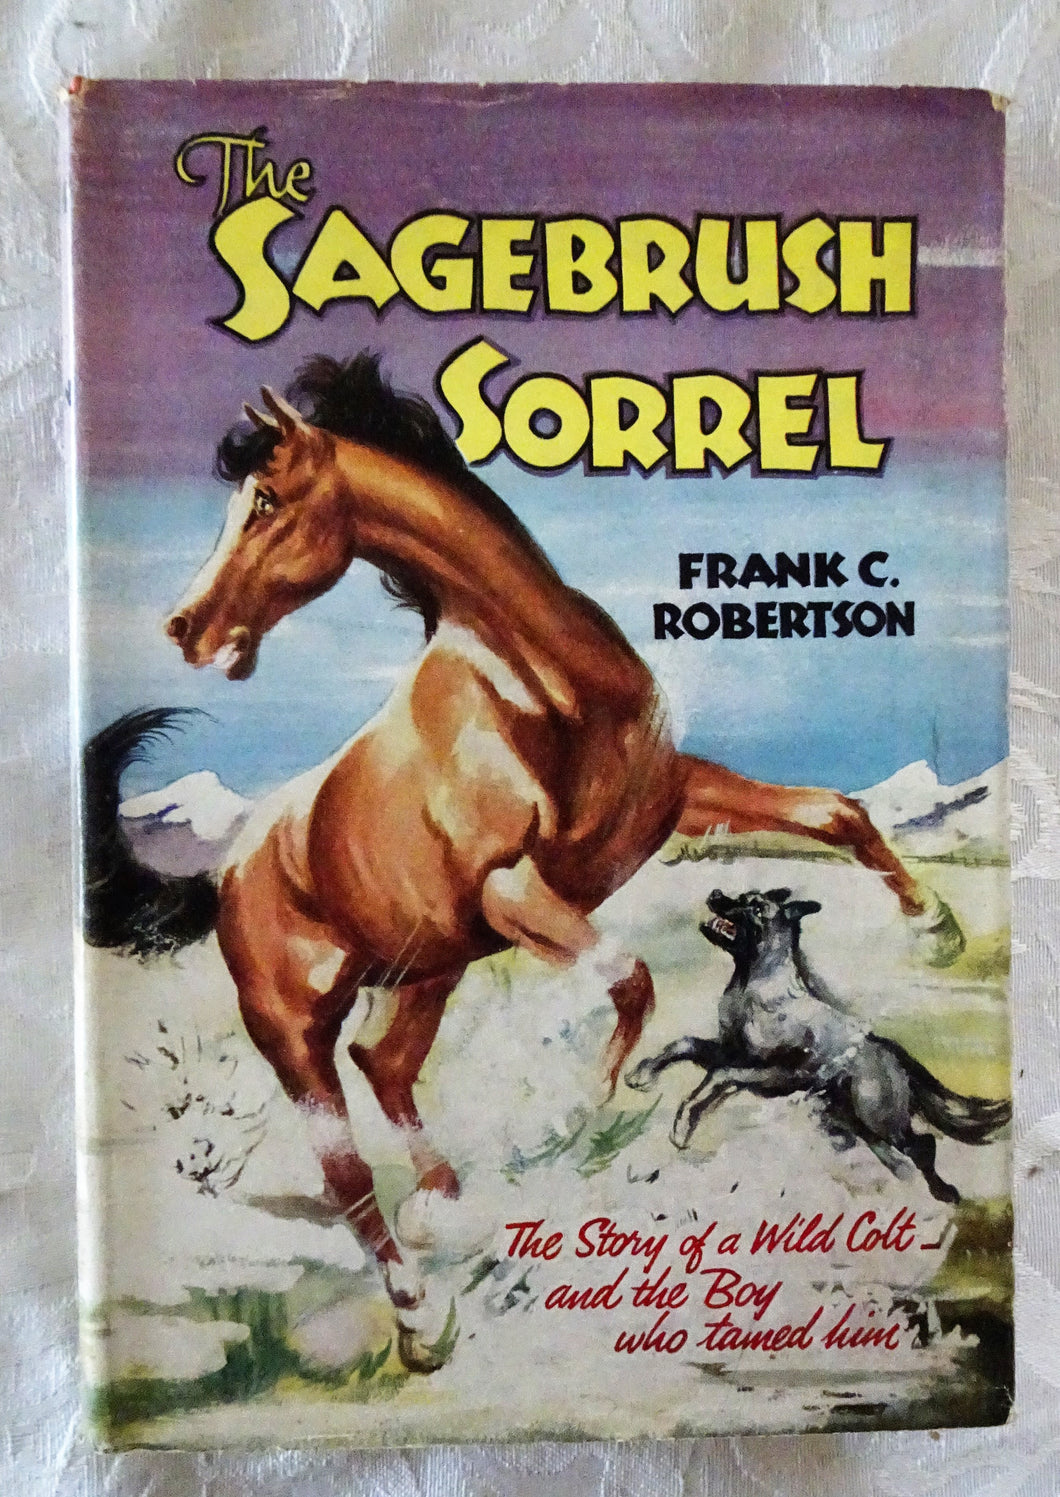 The Sagebrush Sorrel by Frank C. Robertson